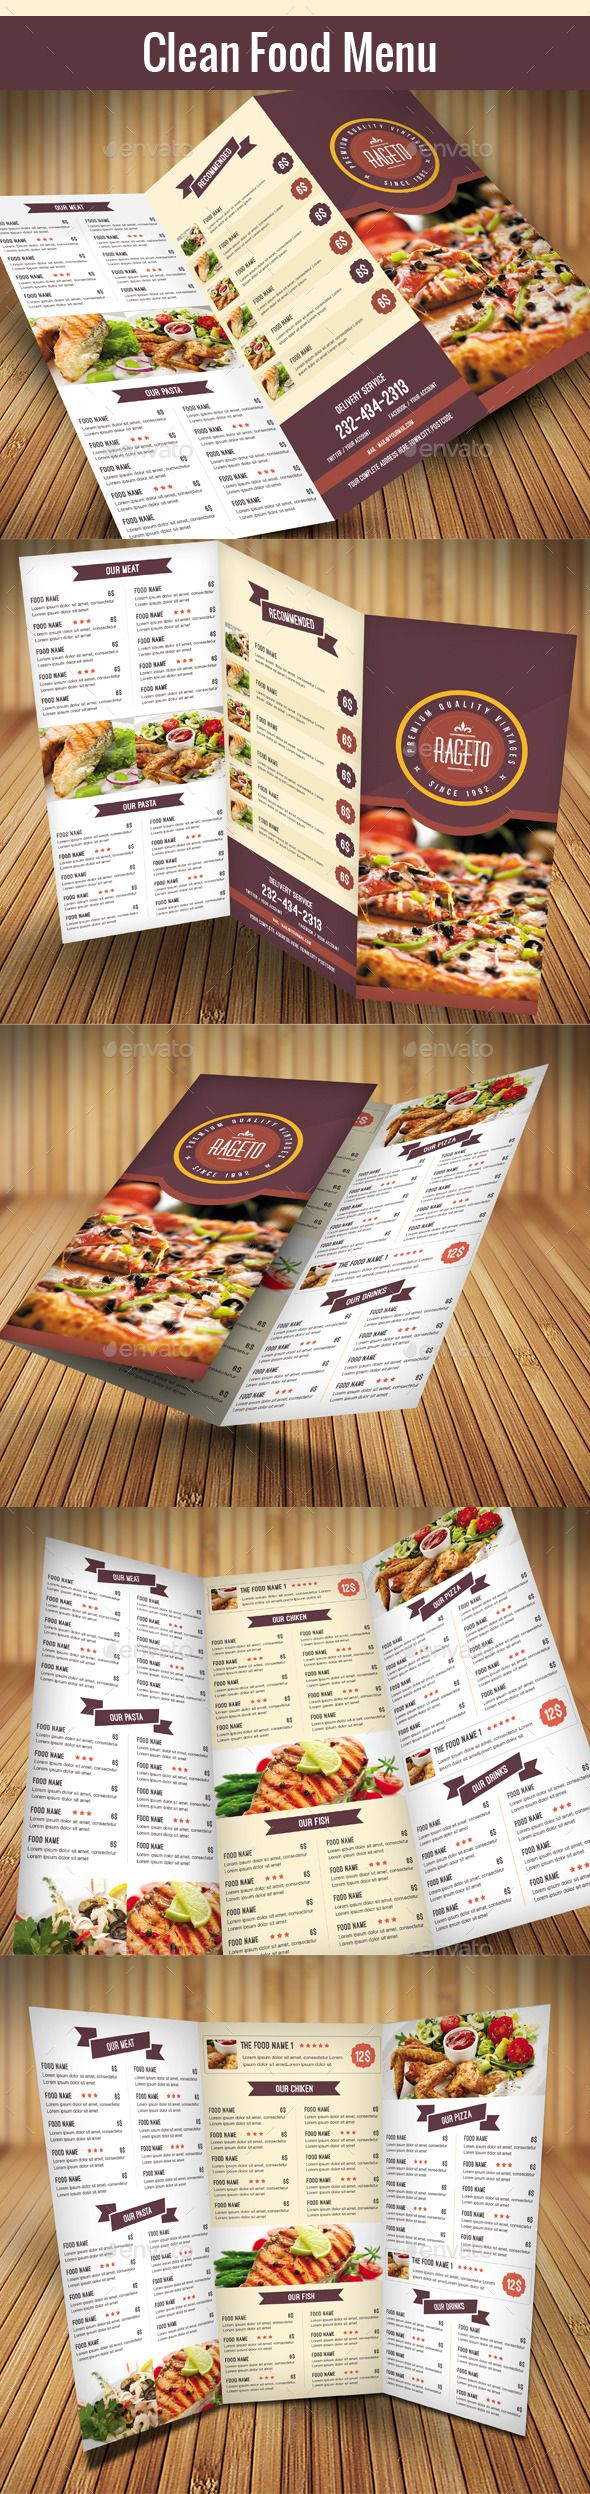 Clean Food Menu 2 — Photoshop PSD #cool #menu design • Available here → https://graphicriver.net/item/clean-food-menu-2/12757118?ref=pxcr